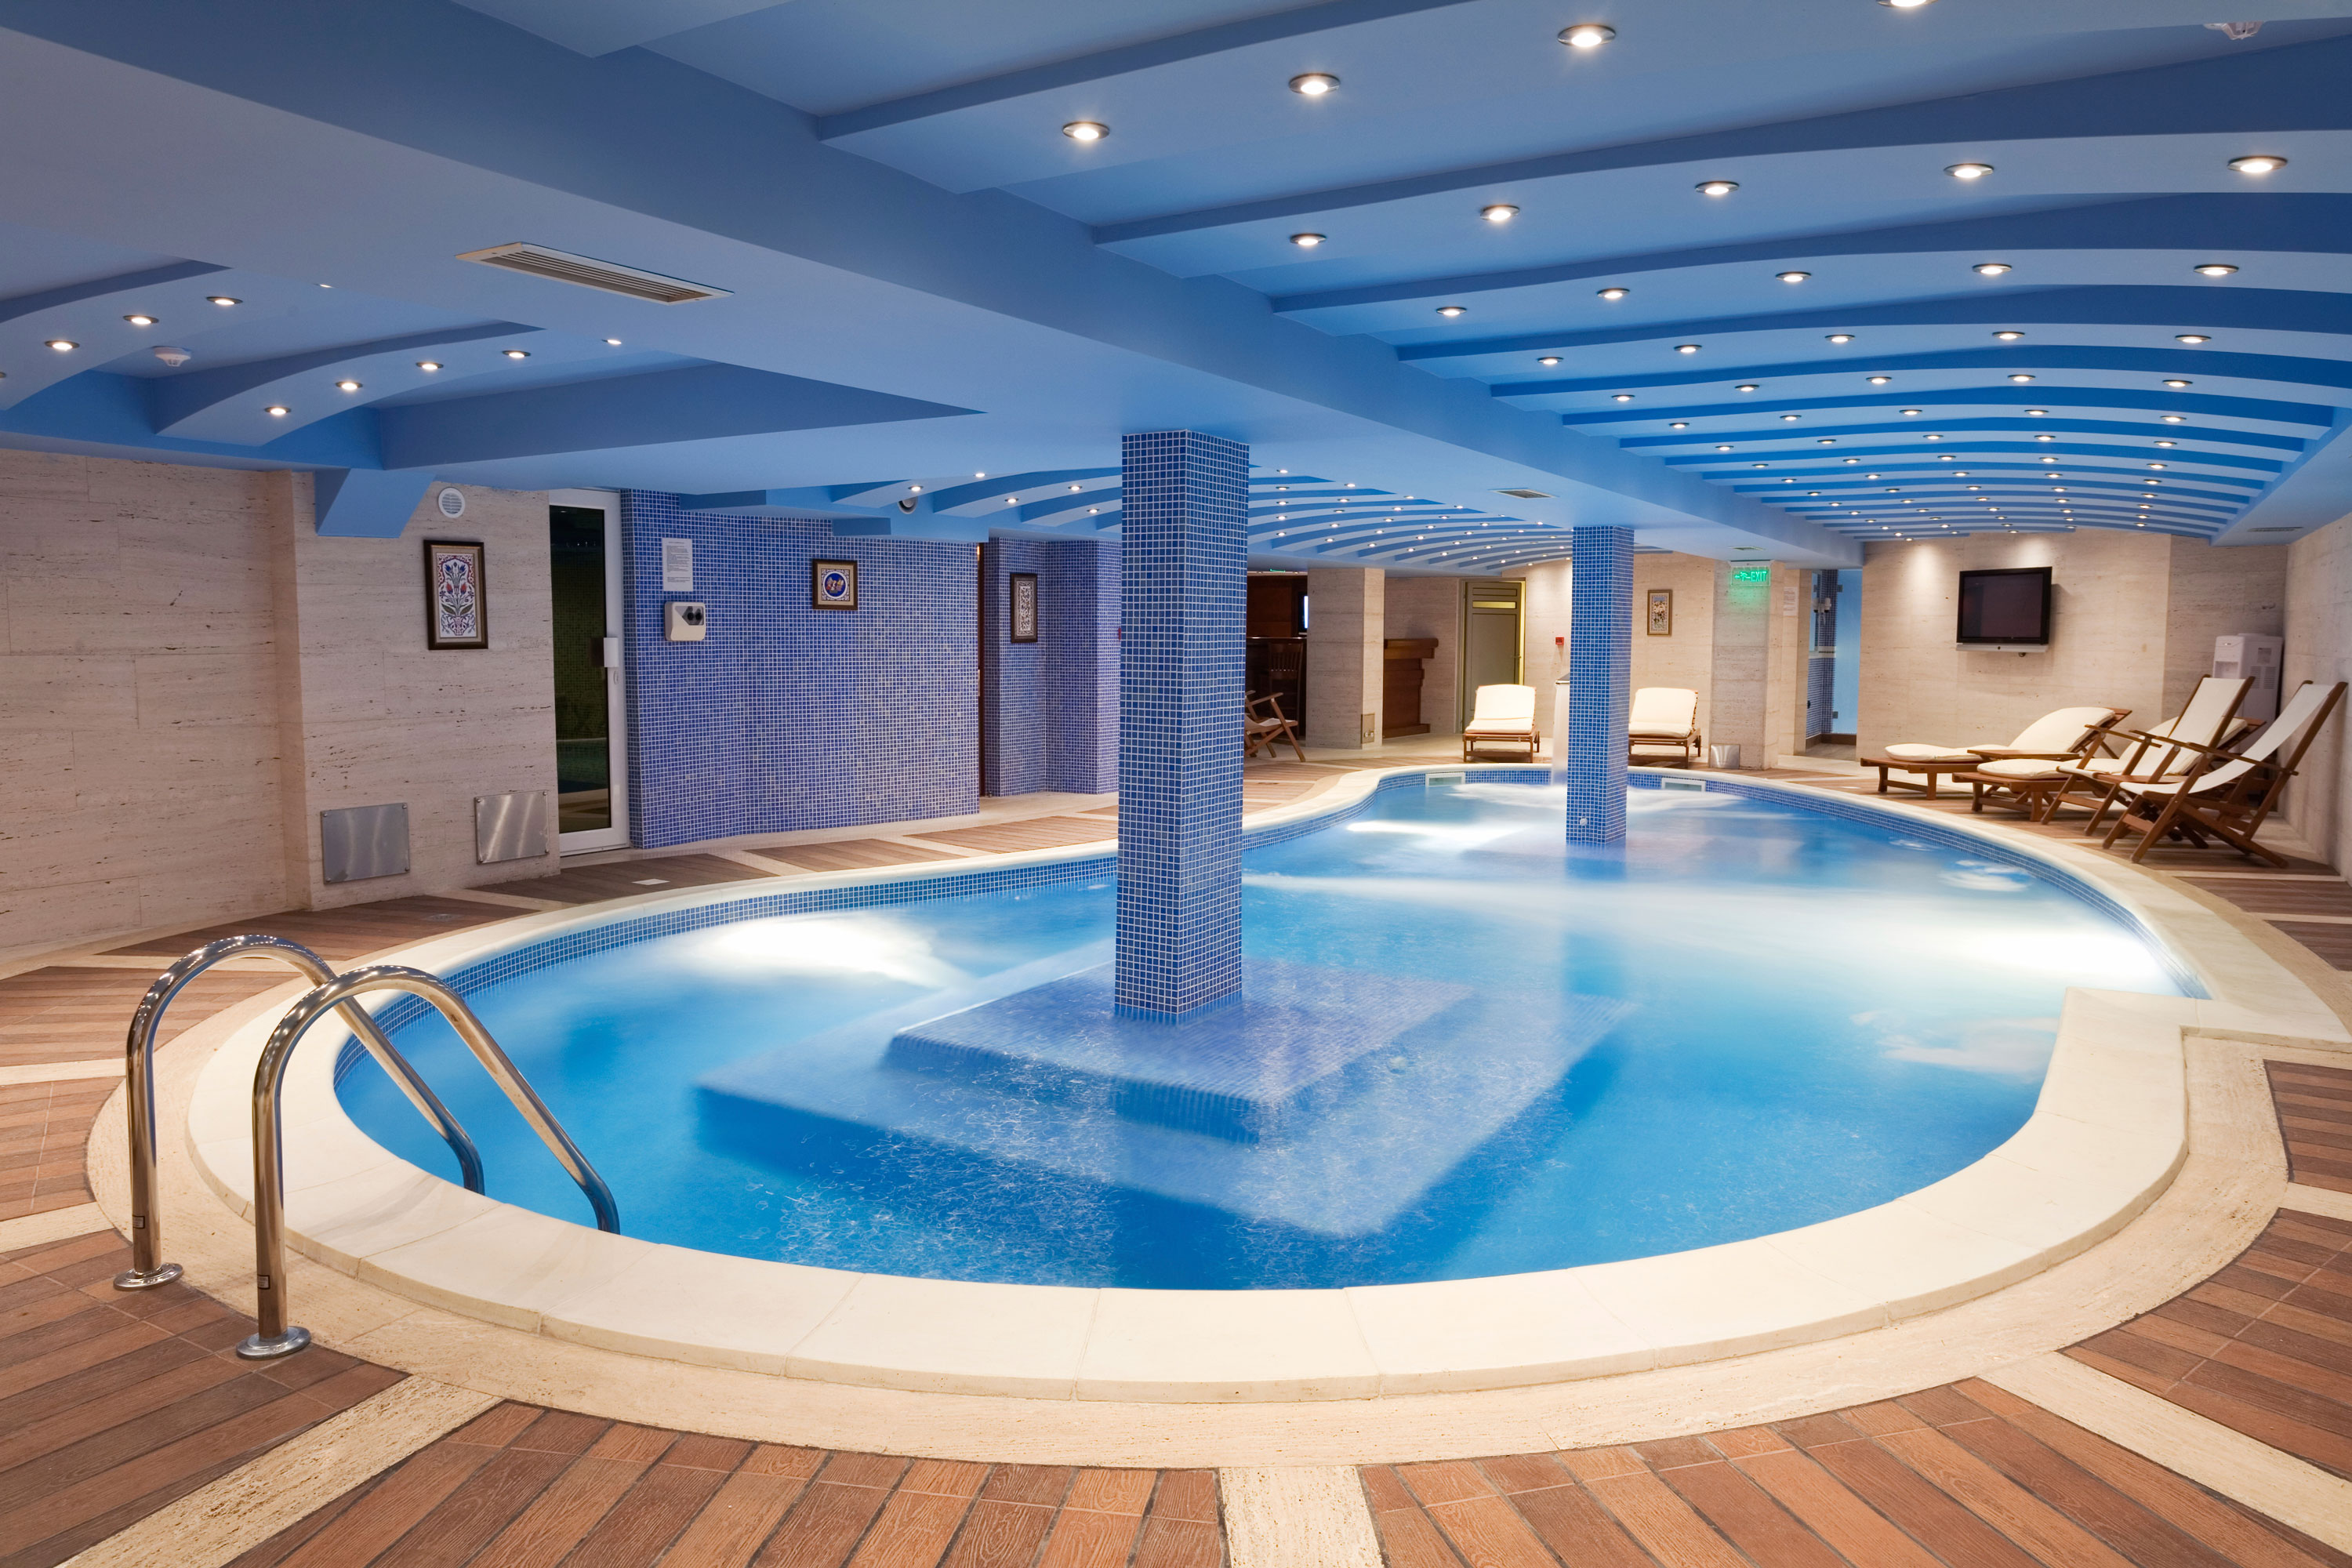 Three indoor pool considerations for next your custom indoor swimming pool Indoor swimming pool pictures